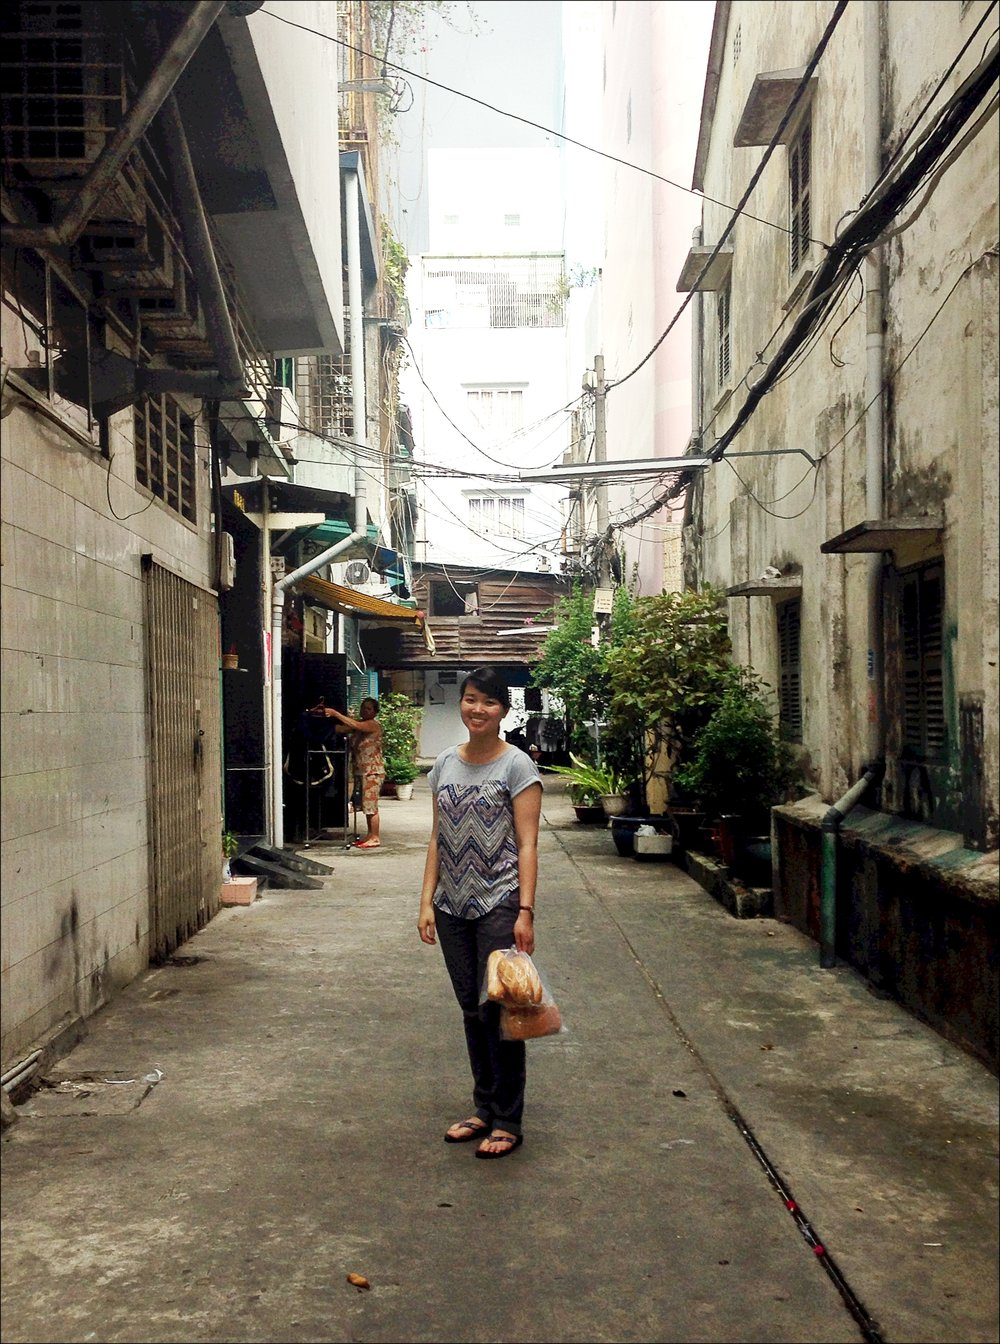 Catherine in the alley by her grandmother's house in Viet Nam